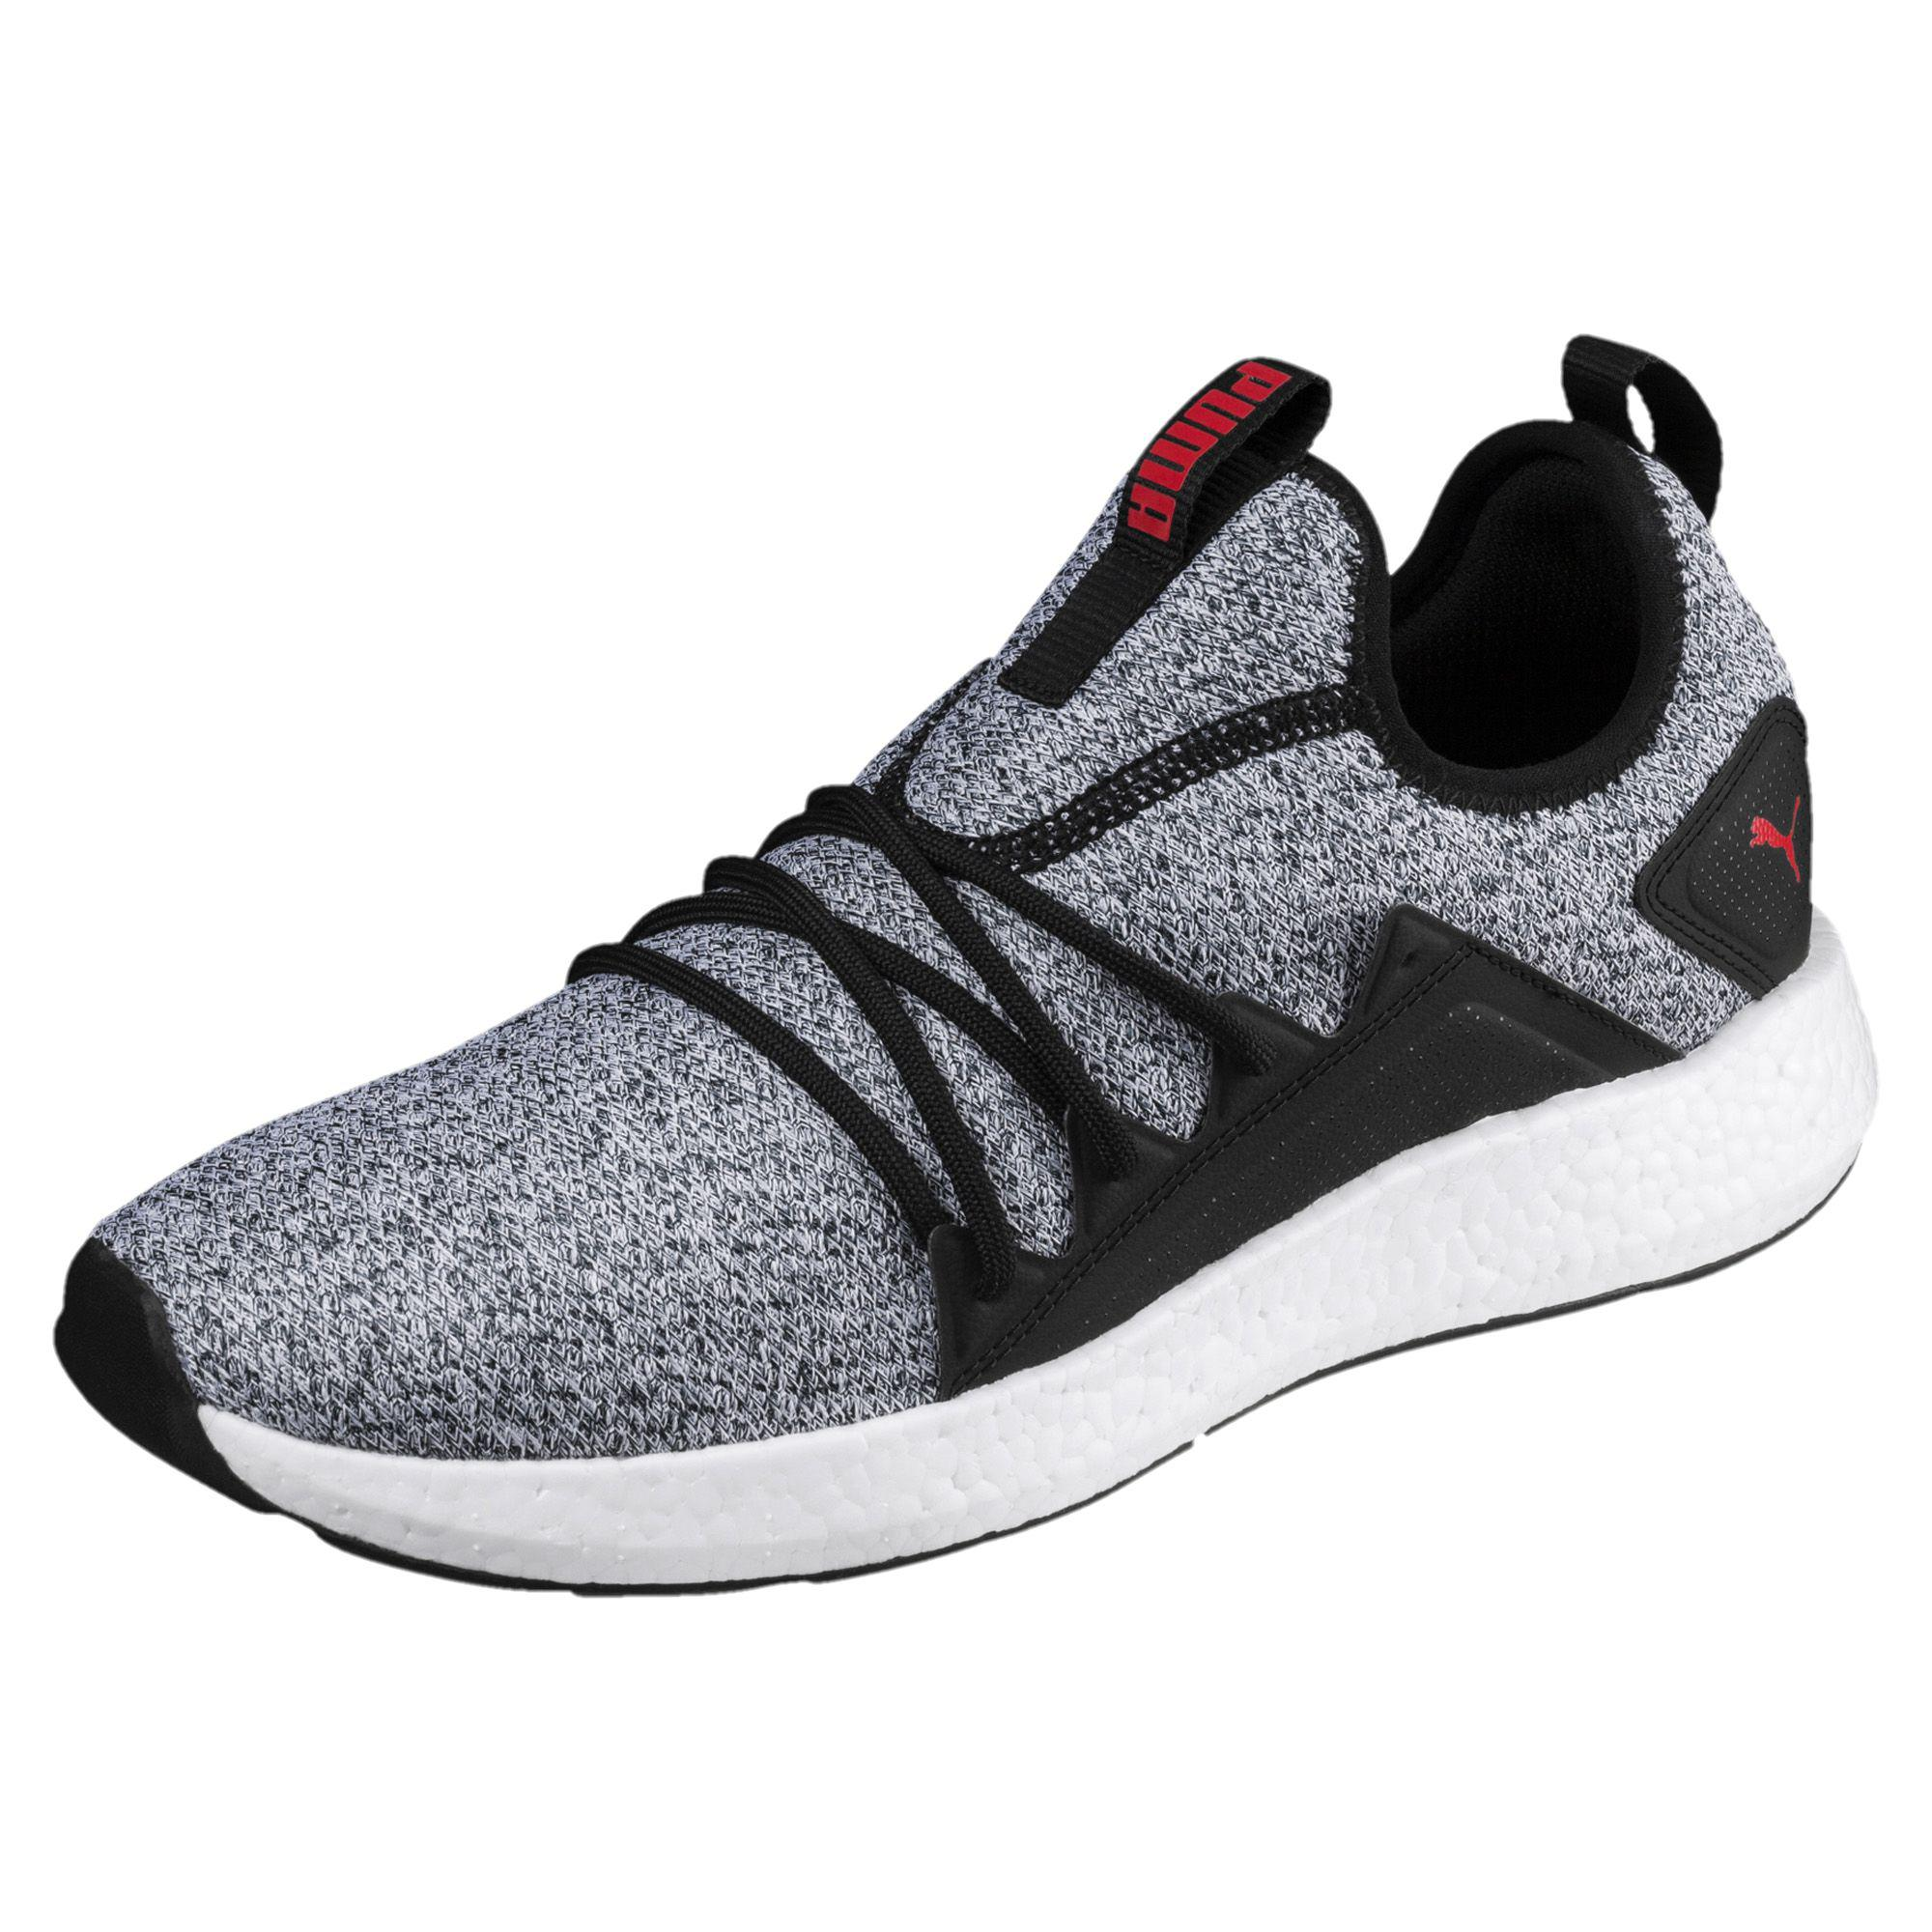 4d813db41e1 Lyst - PUMA Nrgy Neko Knit in Black for Men - Save 34%